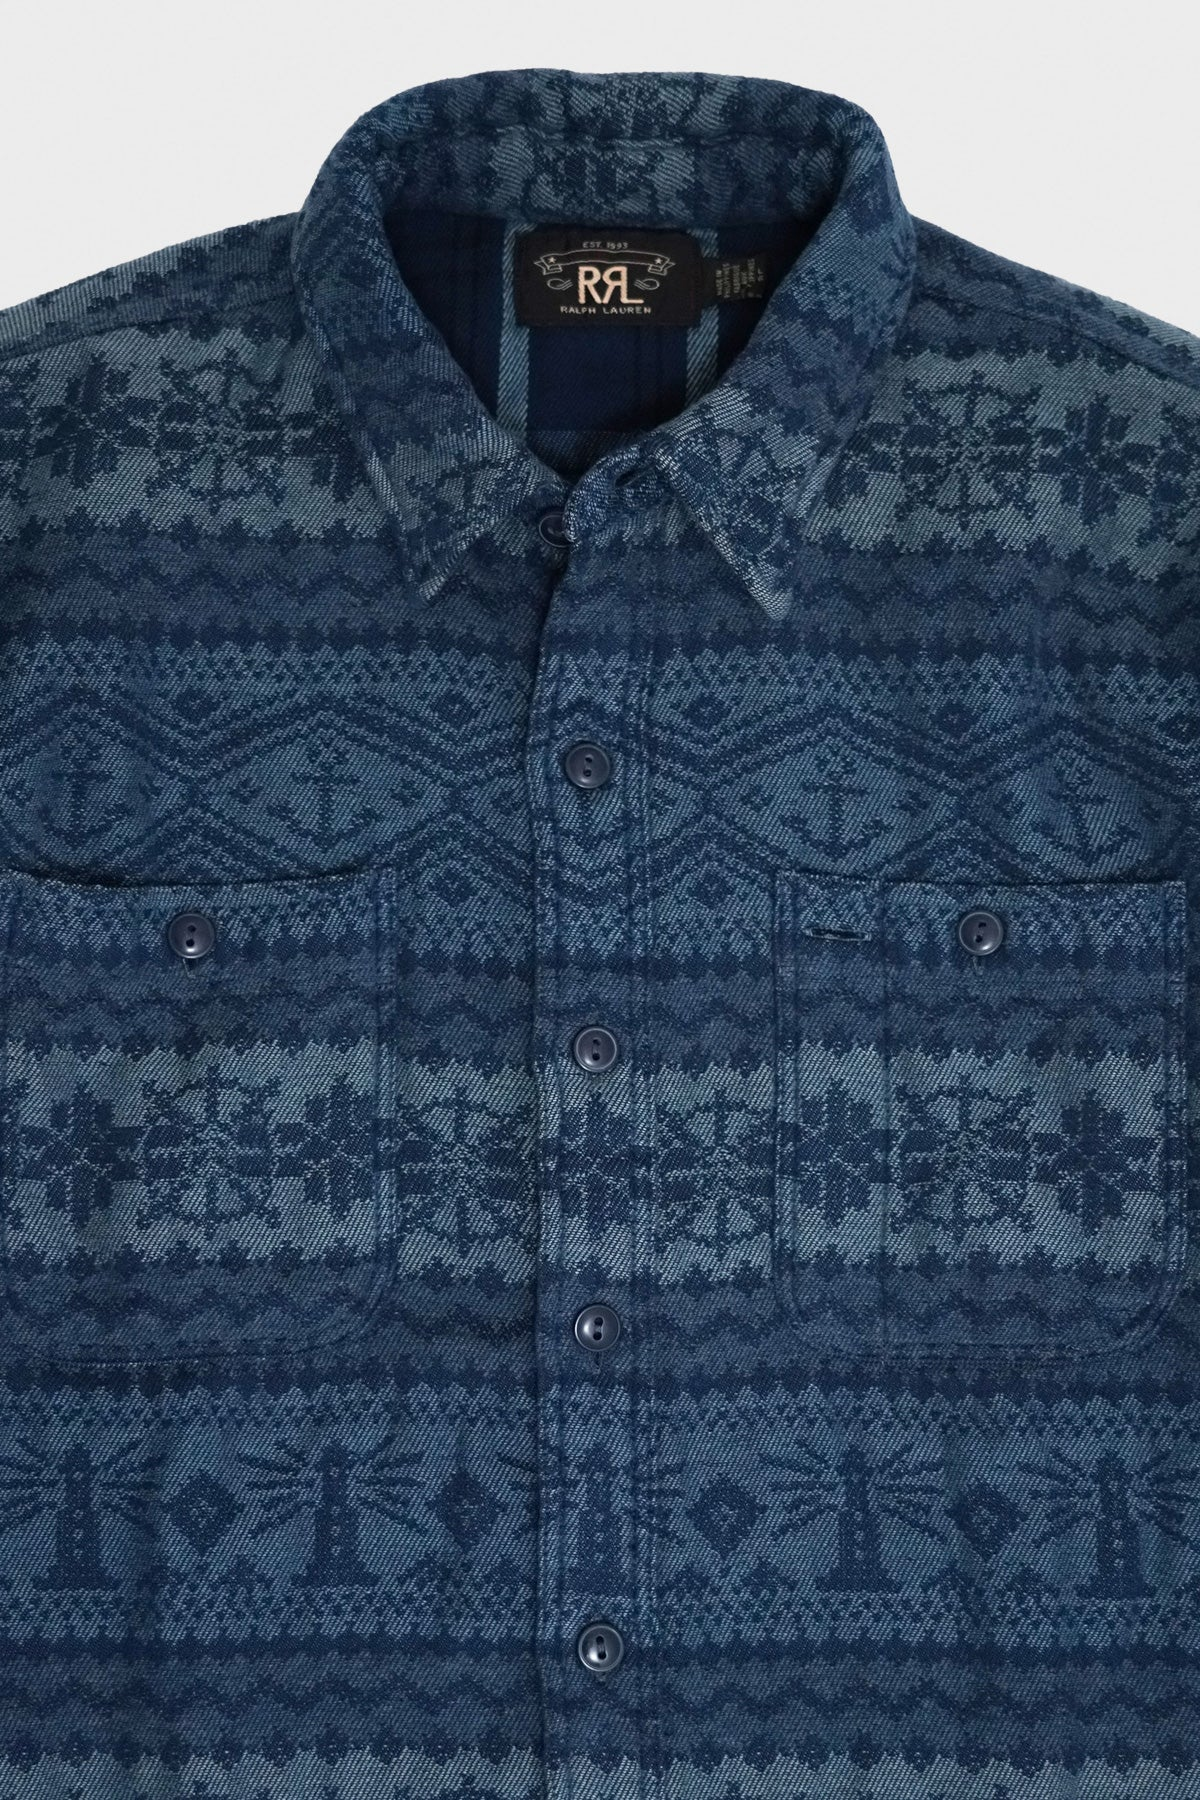 RRL - Fair Isle Jacquard Workshirt - Navy - Canoe Club